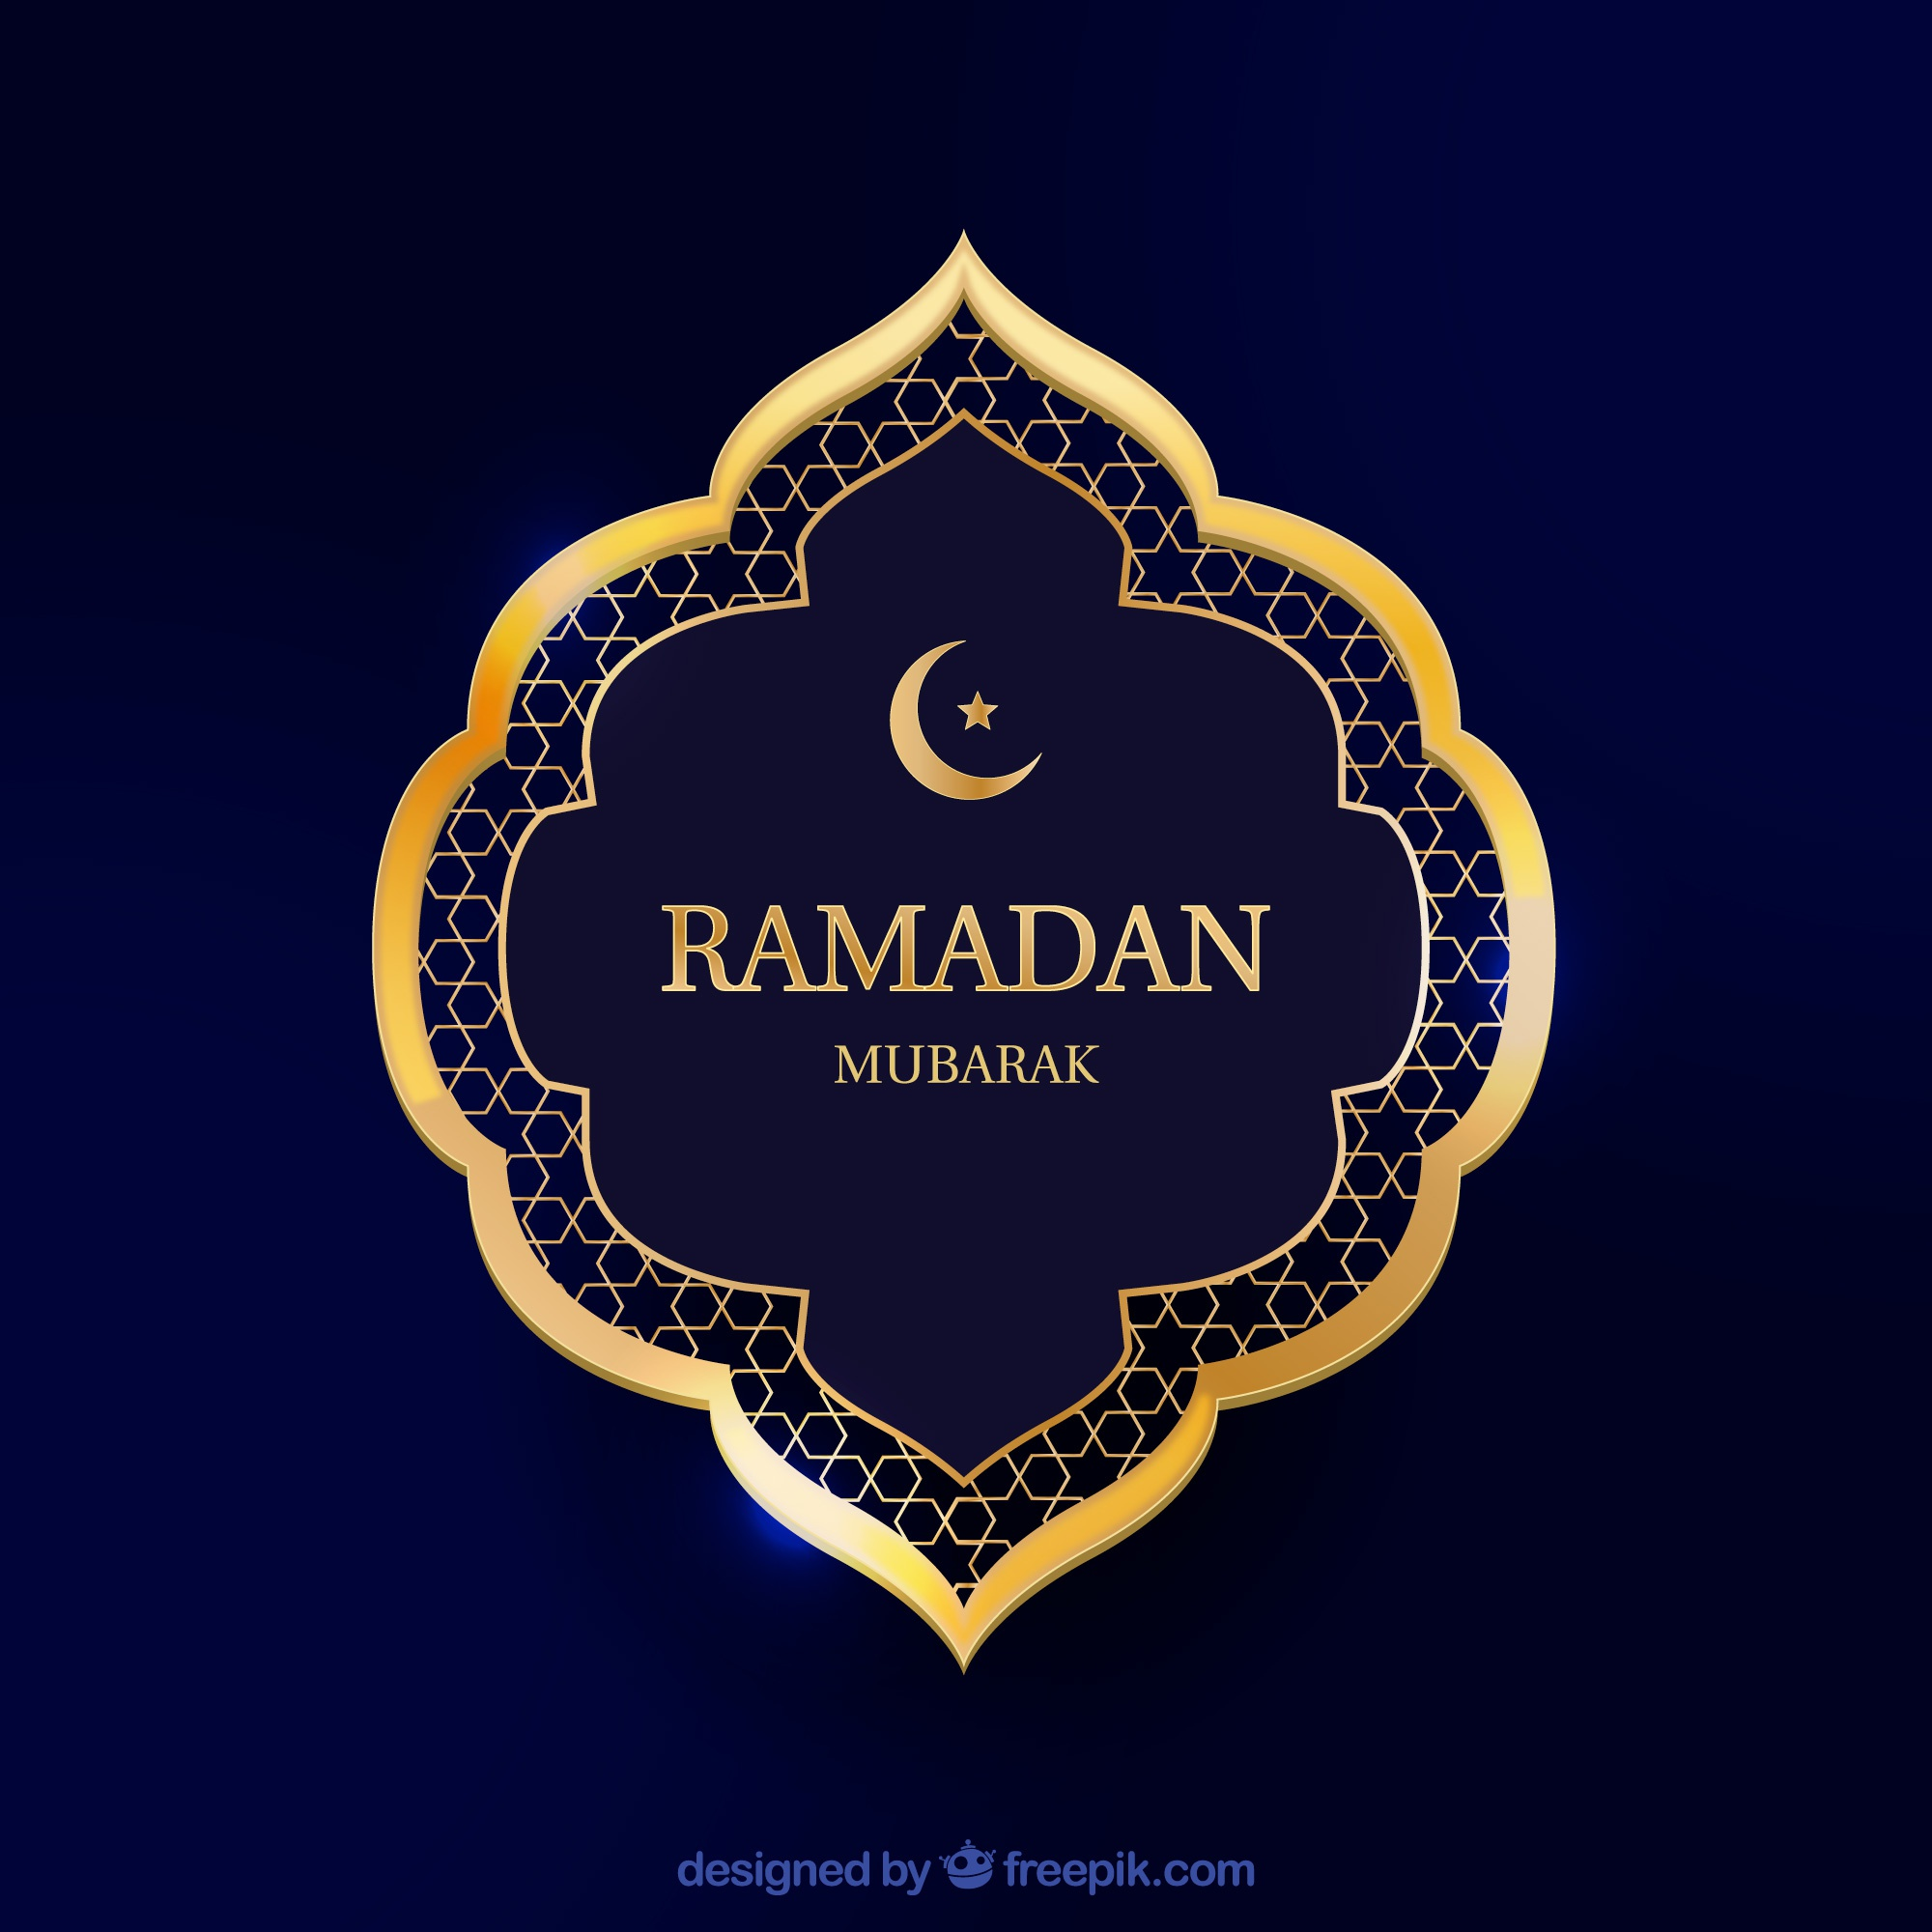 Ramadan background with frame in realistic style